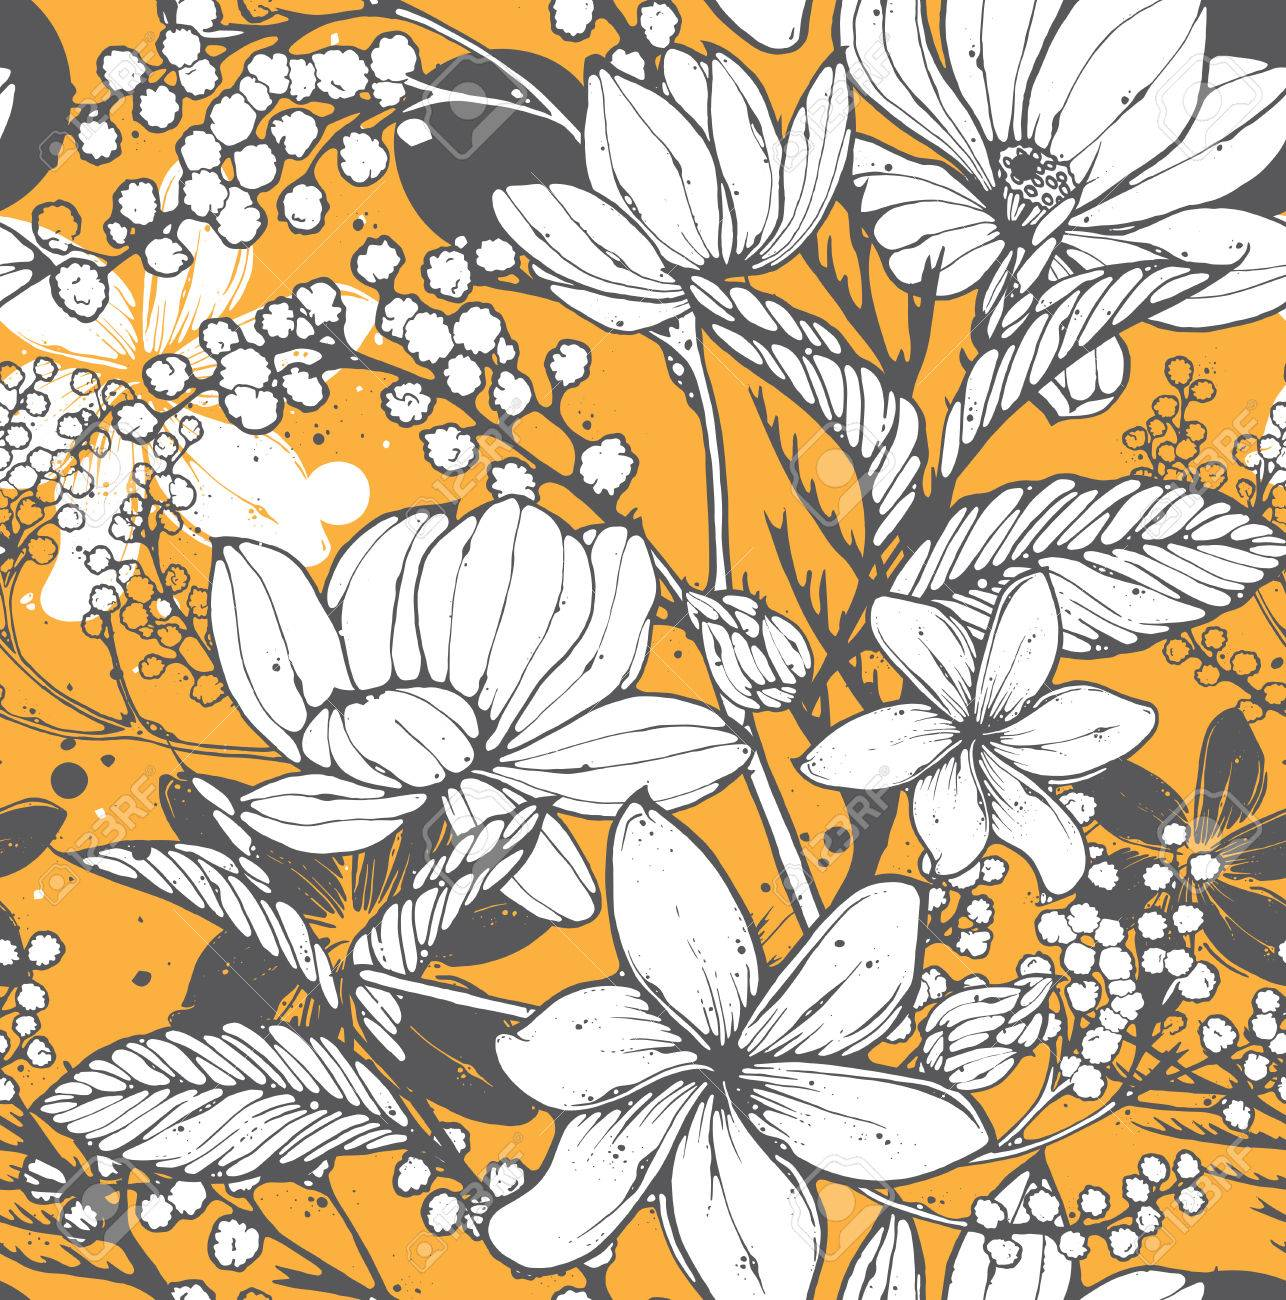 Beautiful seamless pattern with hand drawn flowers, frangipani, mimosa and lotus. Elegant repeating surface pattern perfect for web and print purposes. - 53763105